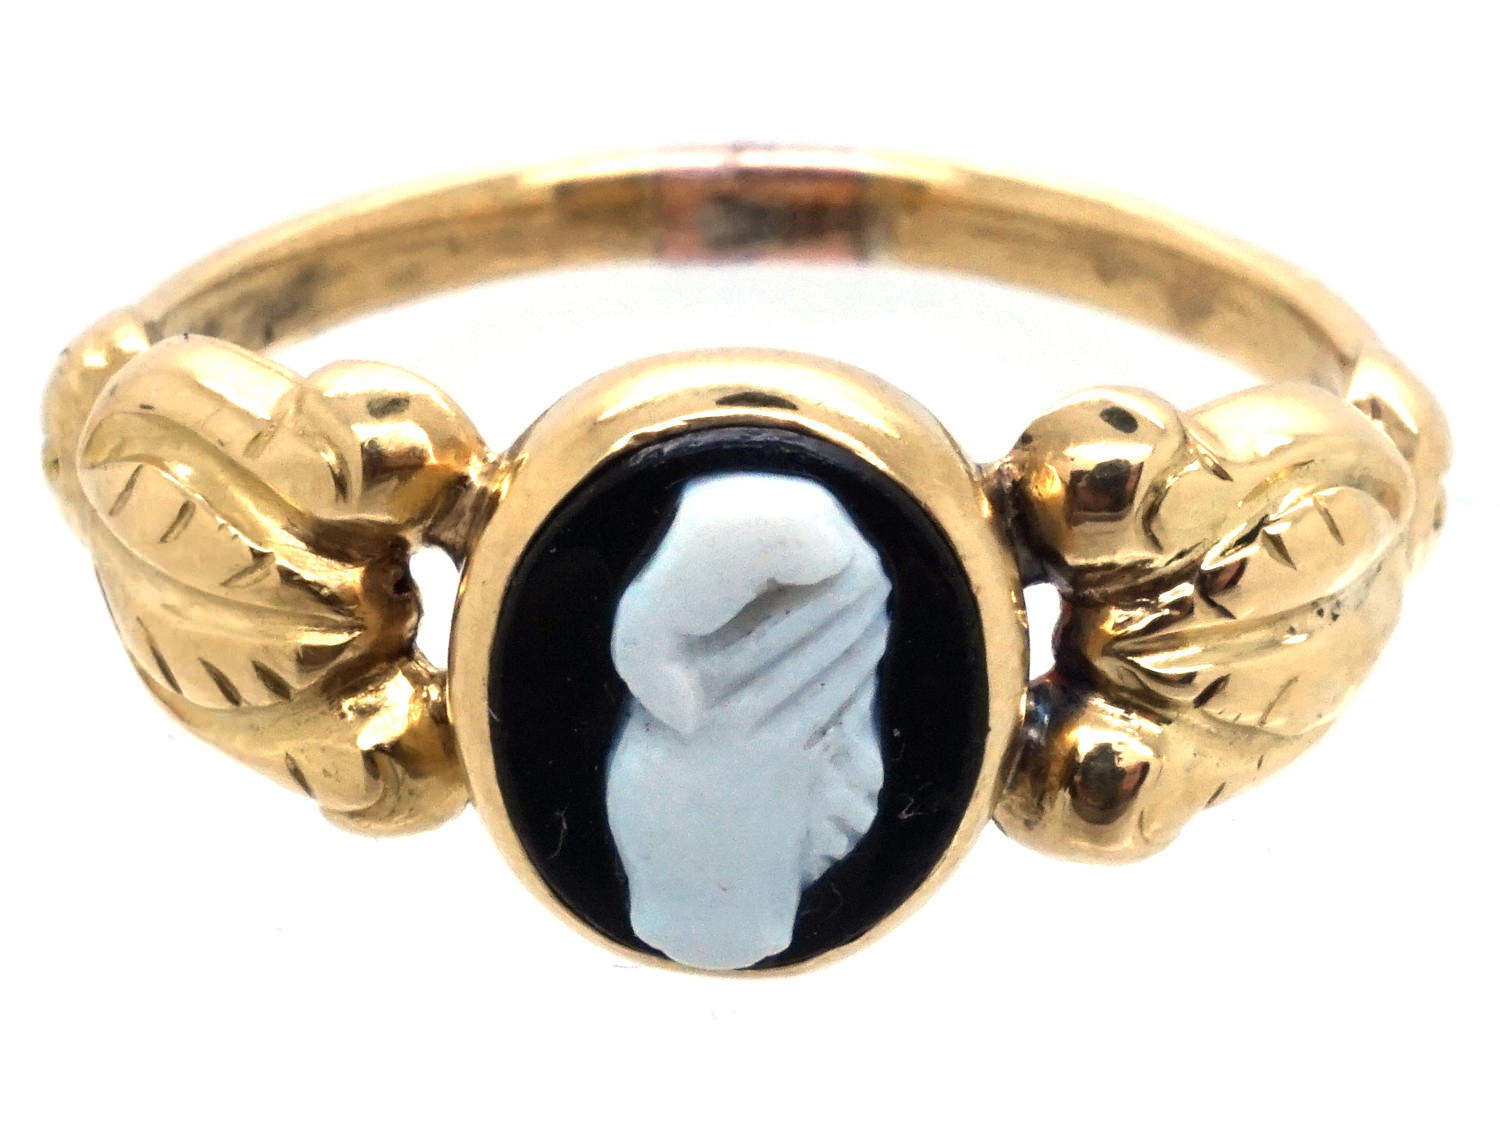 Regency 18ct Gold Clasped Hands Friendship Ring The